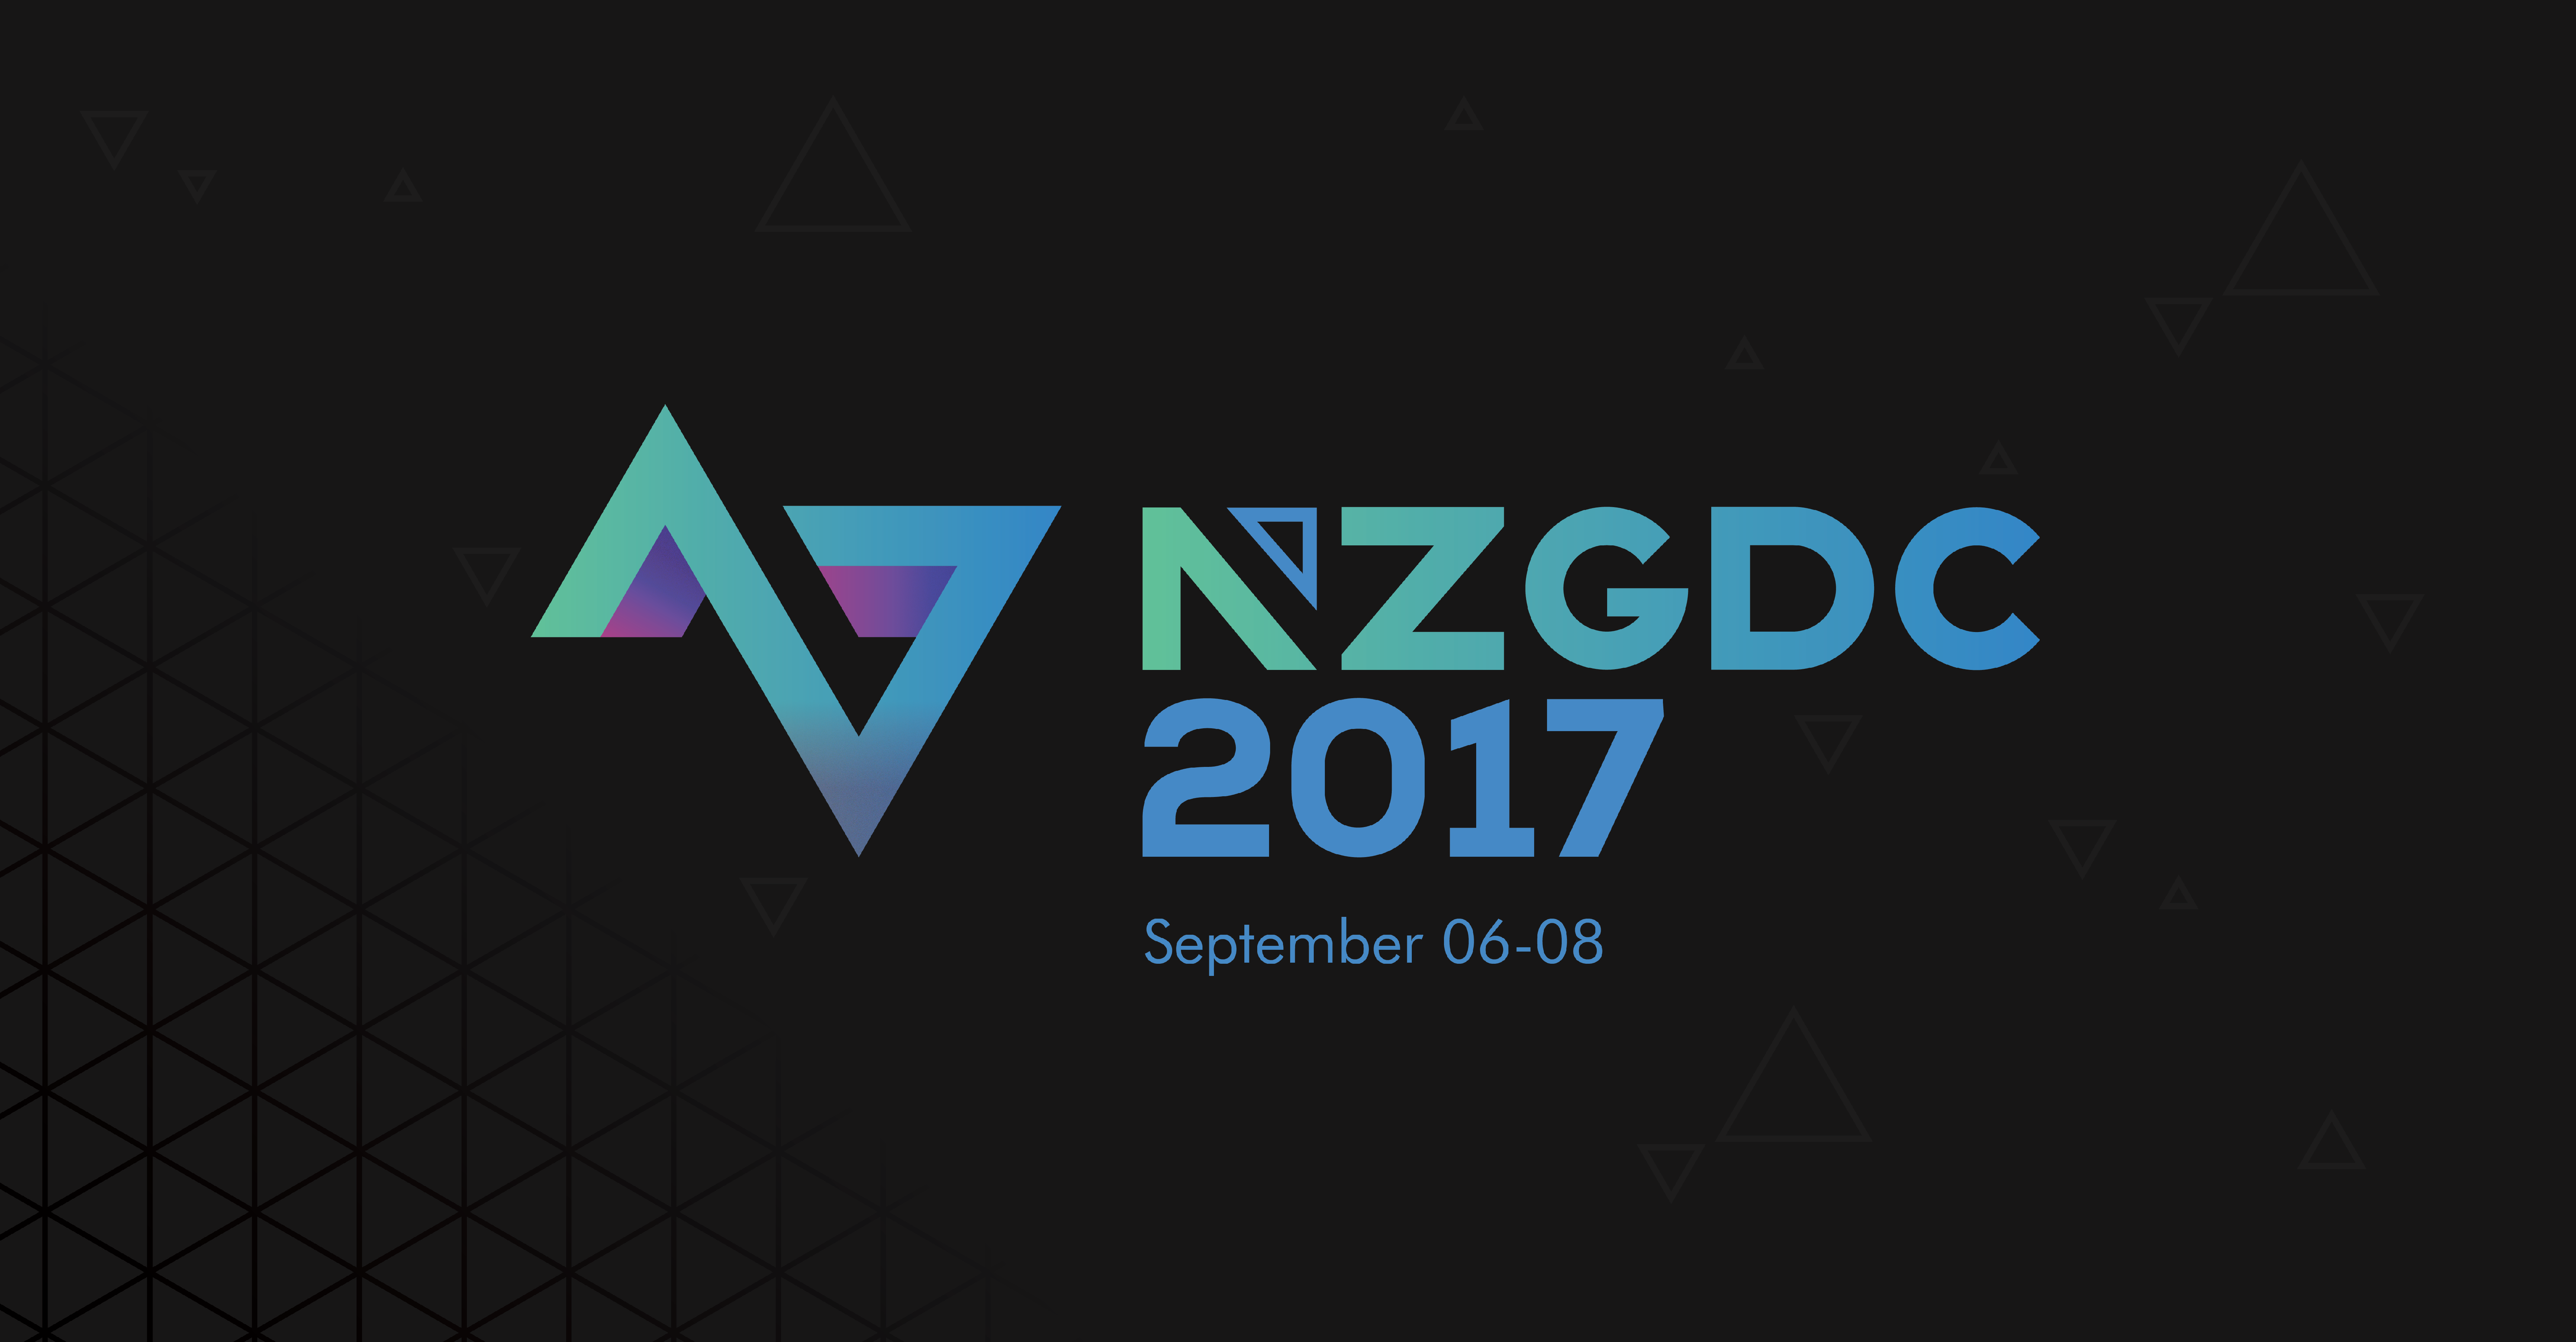 New Zealand Game Developers Conference 2017 logo